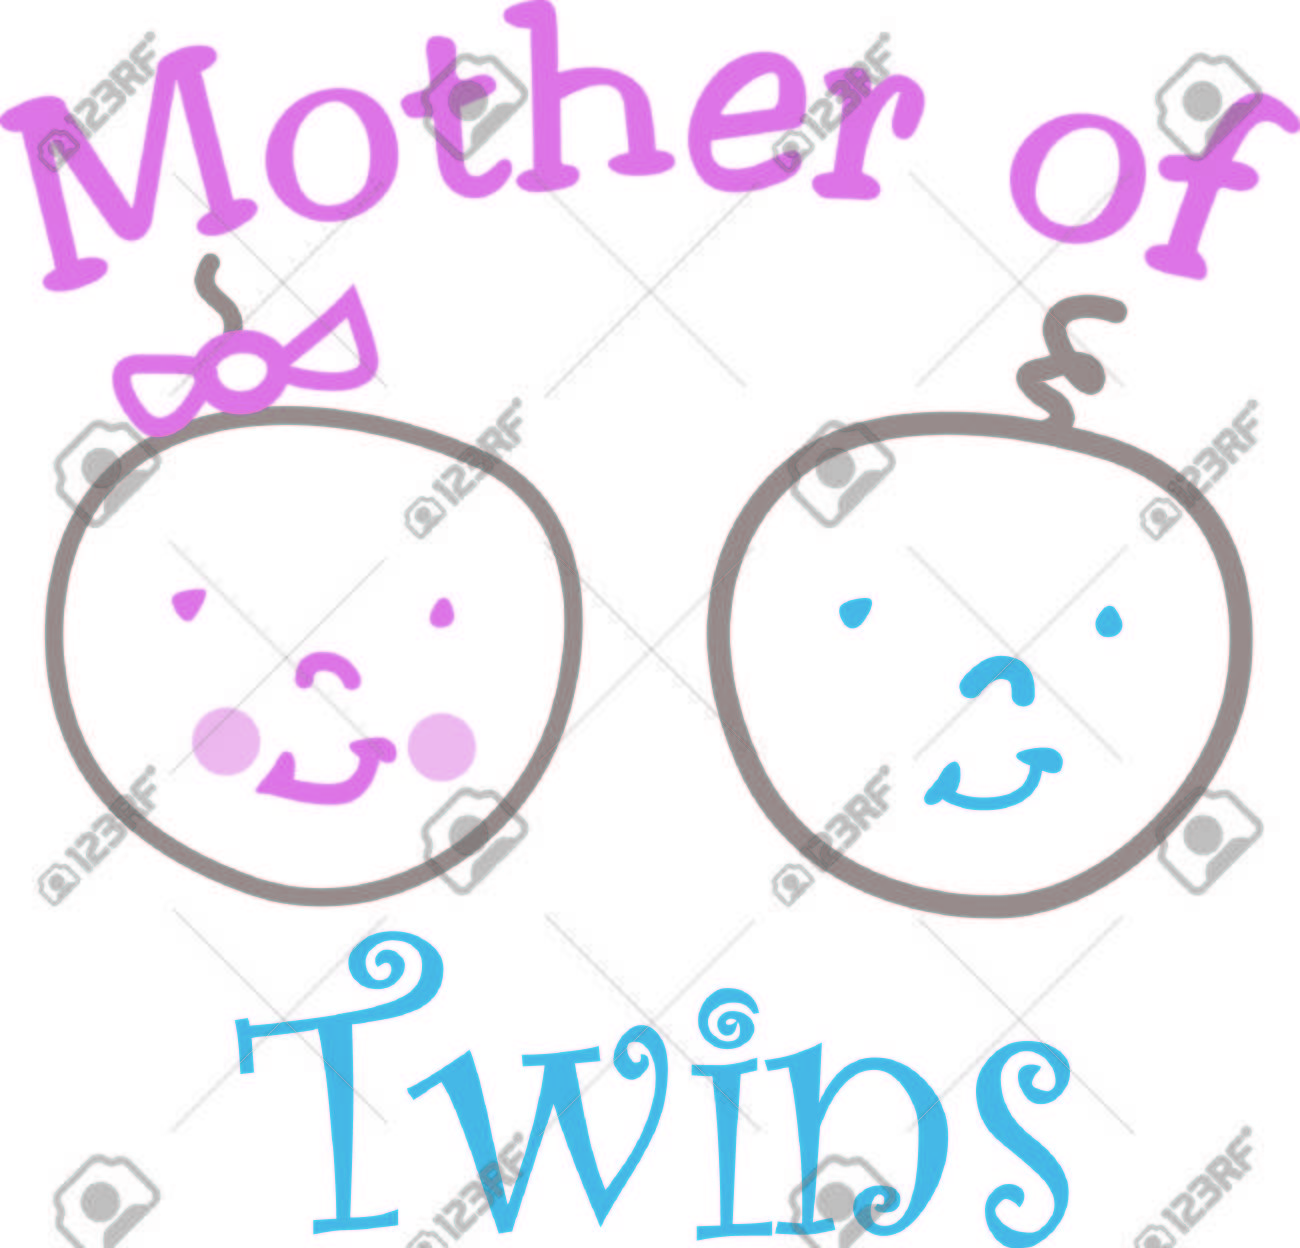 Twins what could be better These happy twins are shown in a